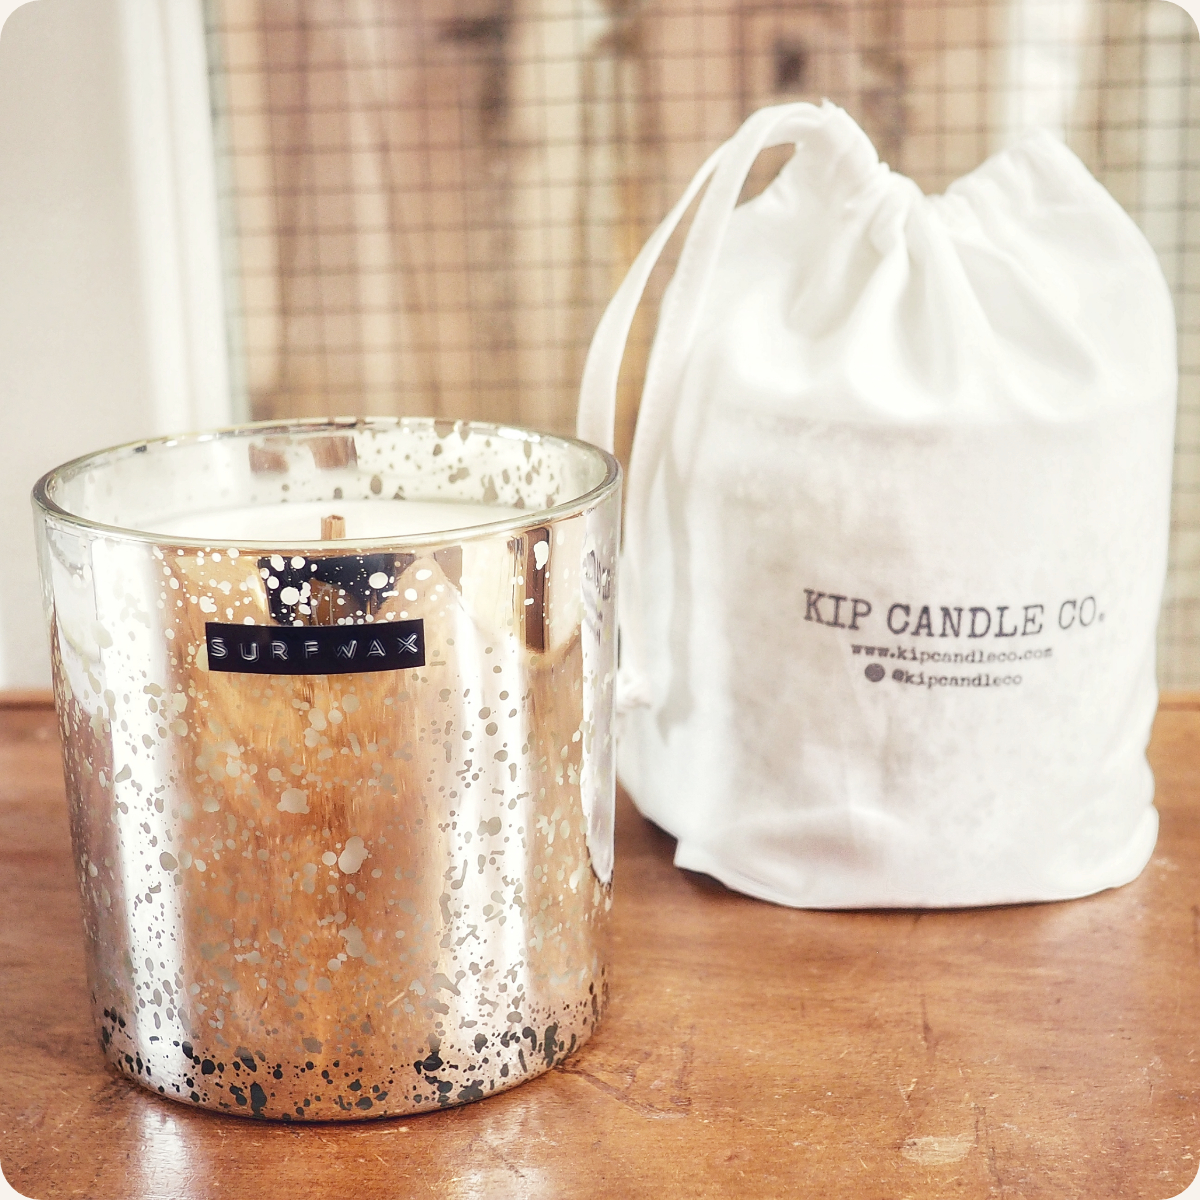 Surfwax Gold Coffee Table Candle.